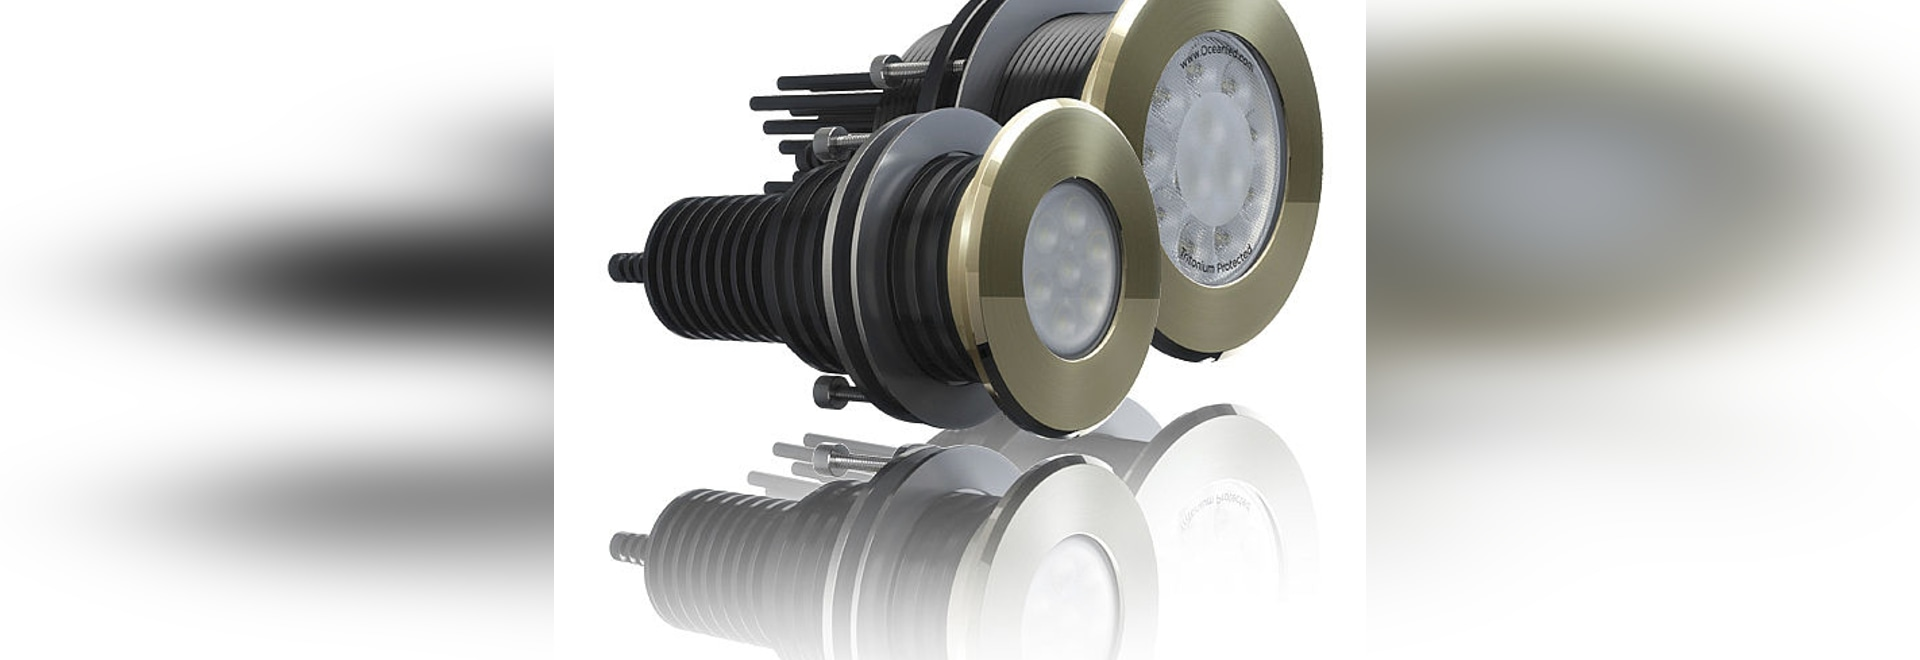 OceanLED Introduces the New Pro Series HD Allure Lights at the Miami International Boat Show  sc 1 st  Trends in the Boating and Maritime Sectors & OceanLED Introduces the New Pro Series HD Allure Lights at the Miami ...